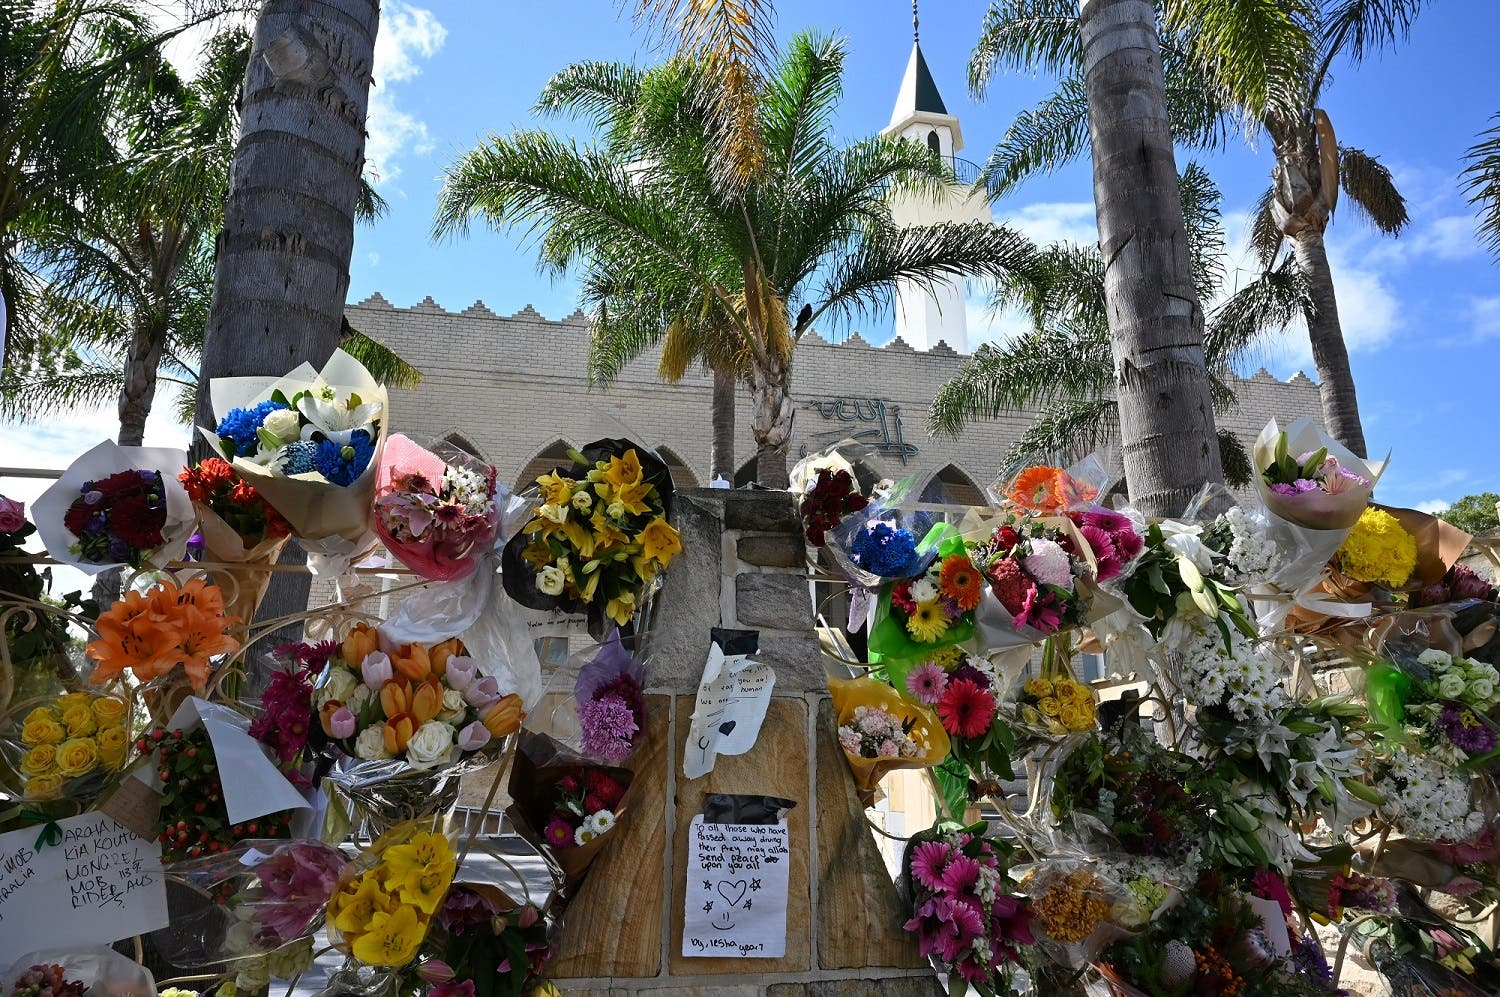 Flowers and messages placed outside Lakemba Mosque in Sydney on March 20, 2018, five days after the mass shooting attacks at two mosques in Christchurch that killed 50 Muslim worshippers in the city. (AFP)